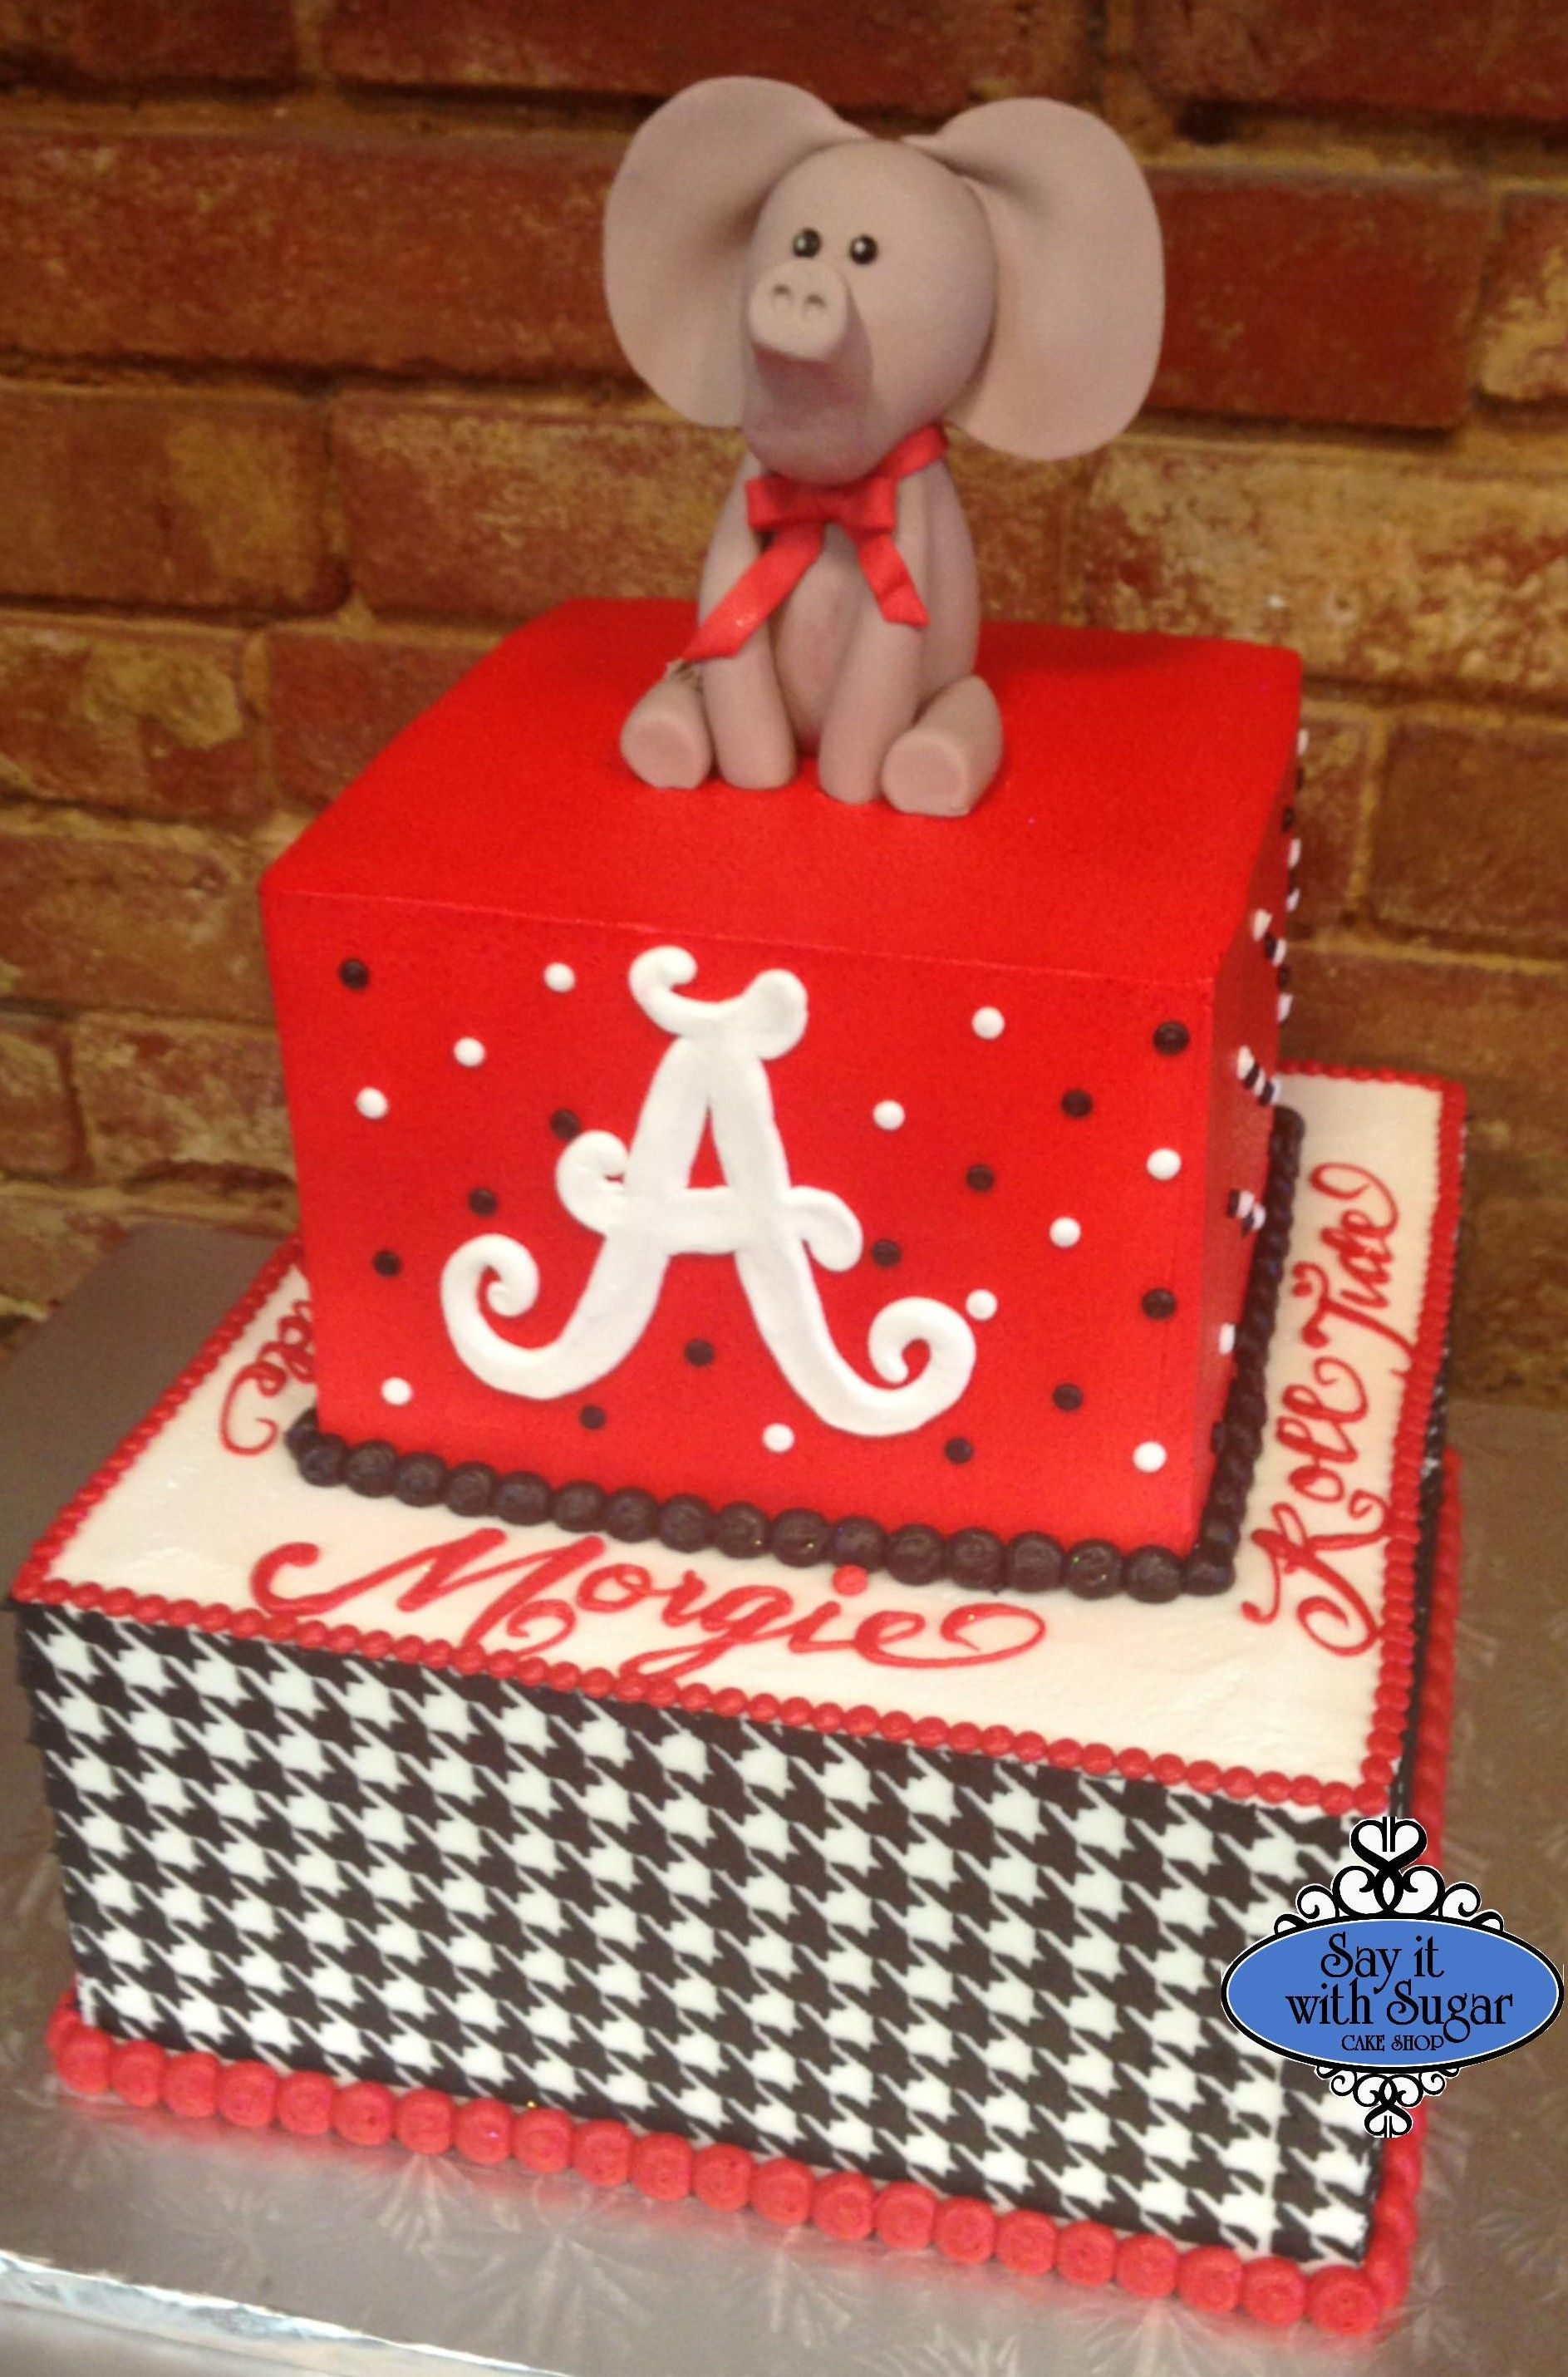 Alabama Roll Tide graduation cake cakes by say it with sugar